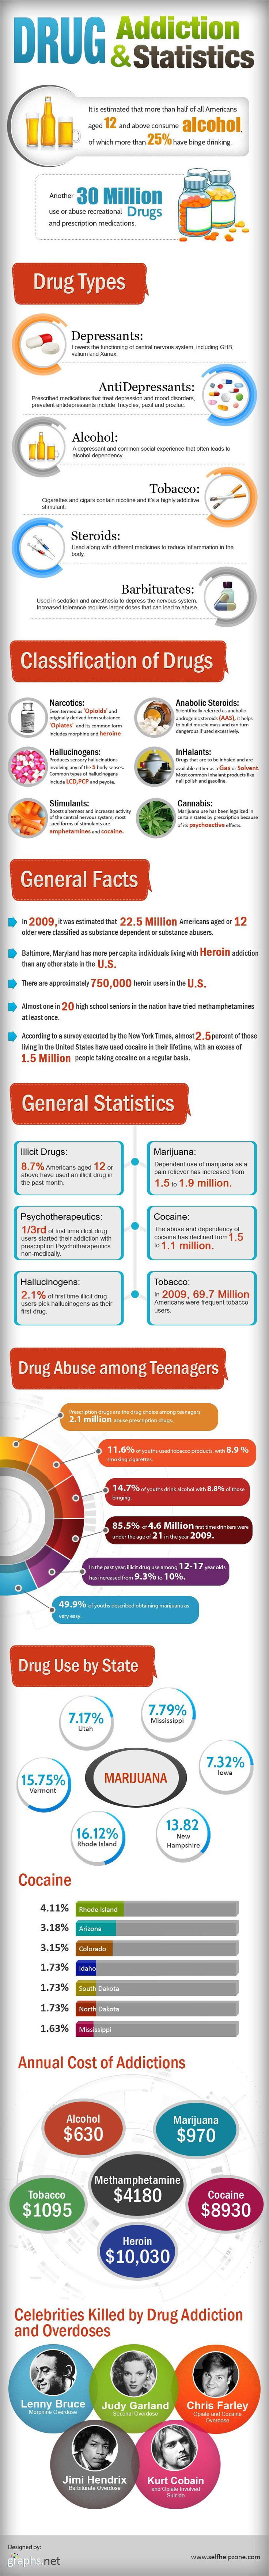 Drug Addiction And Statistics Infographic | Repinned by Melissa K. Nicholson, LMSW www.mkntherapy.com